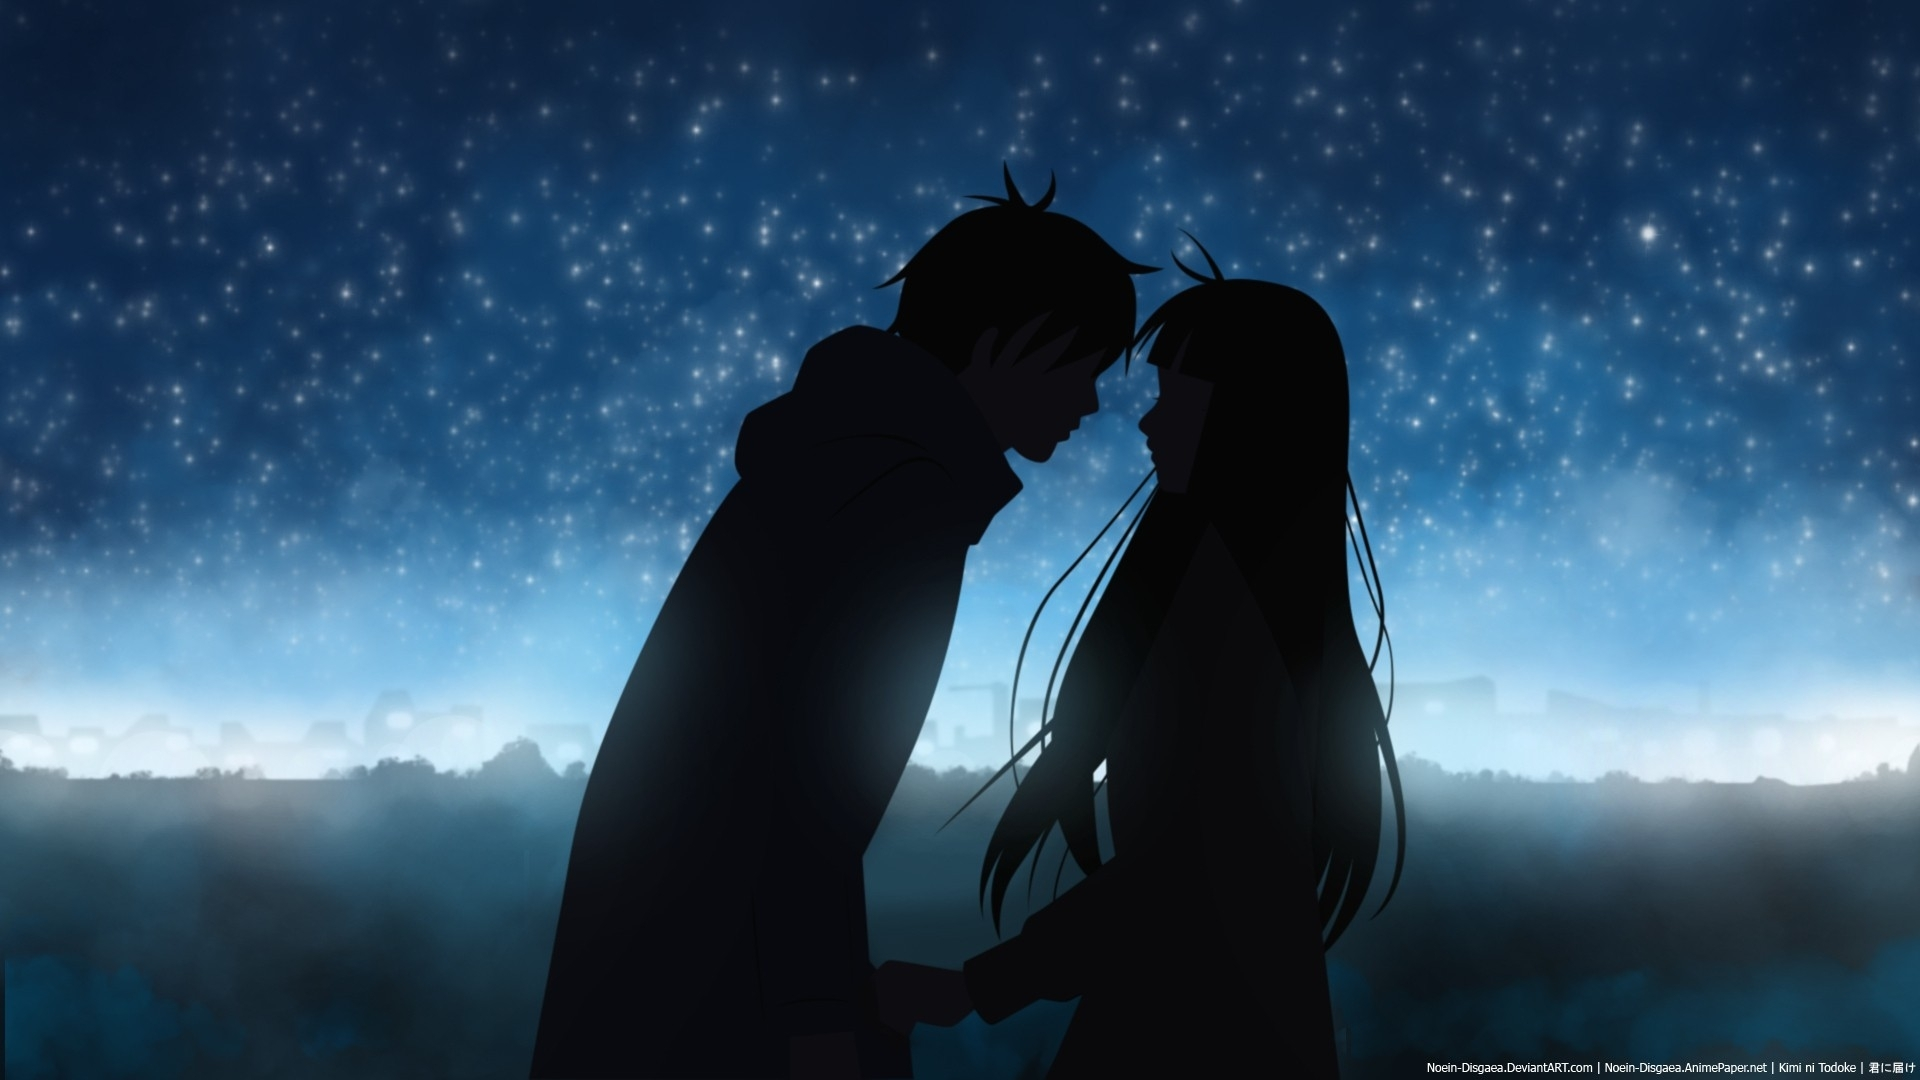 Love Night Kimi Ni Todoke Kuronuma Sawako Kazehaya Shota Anime Girls